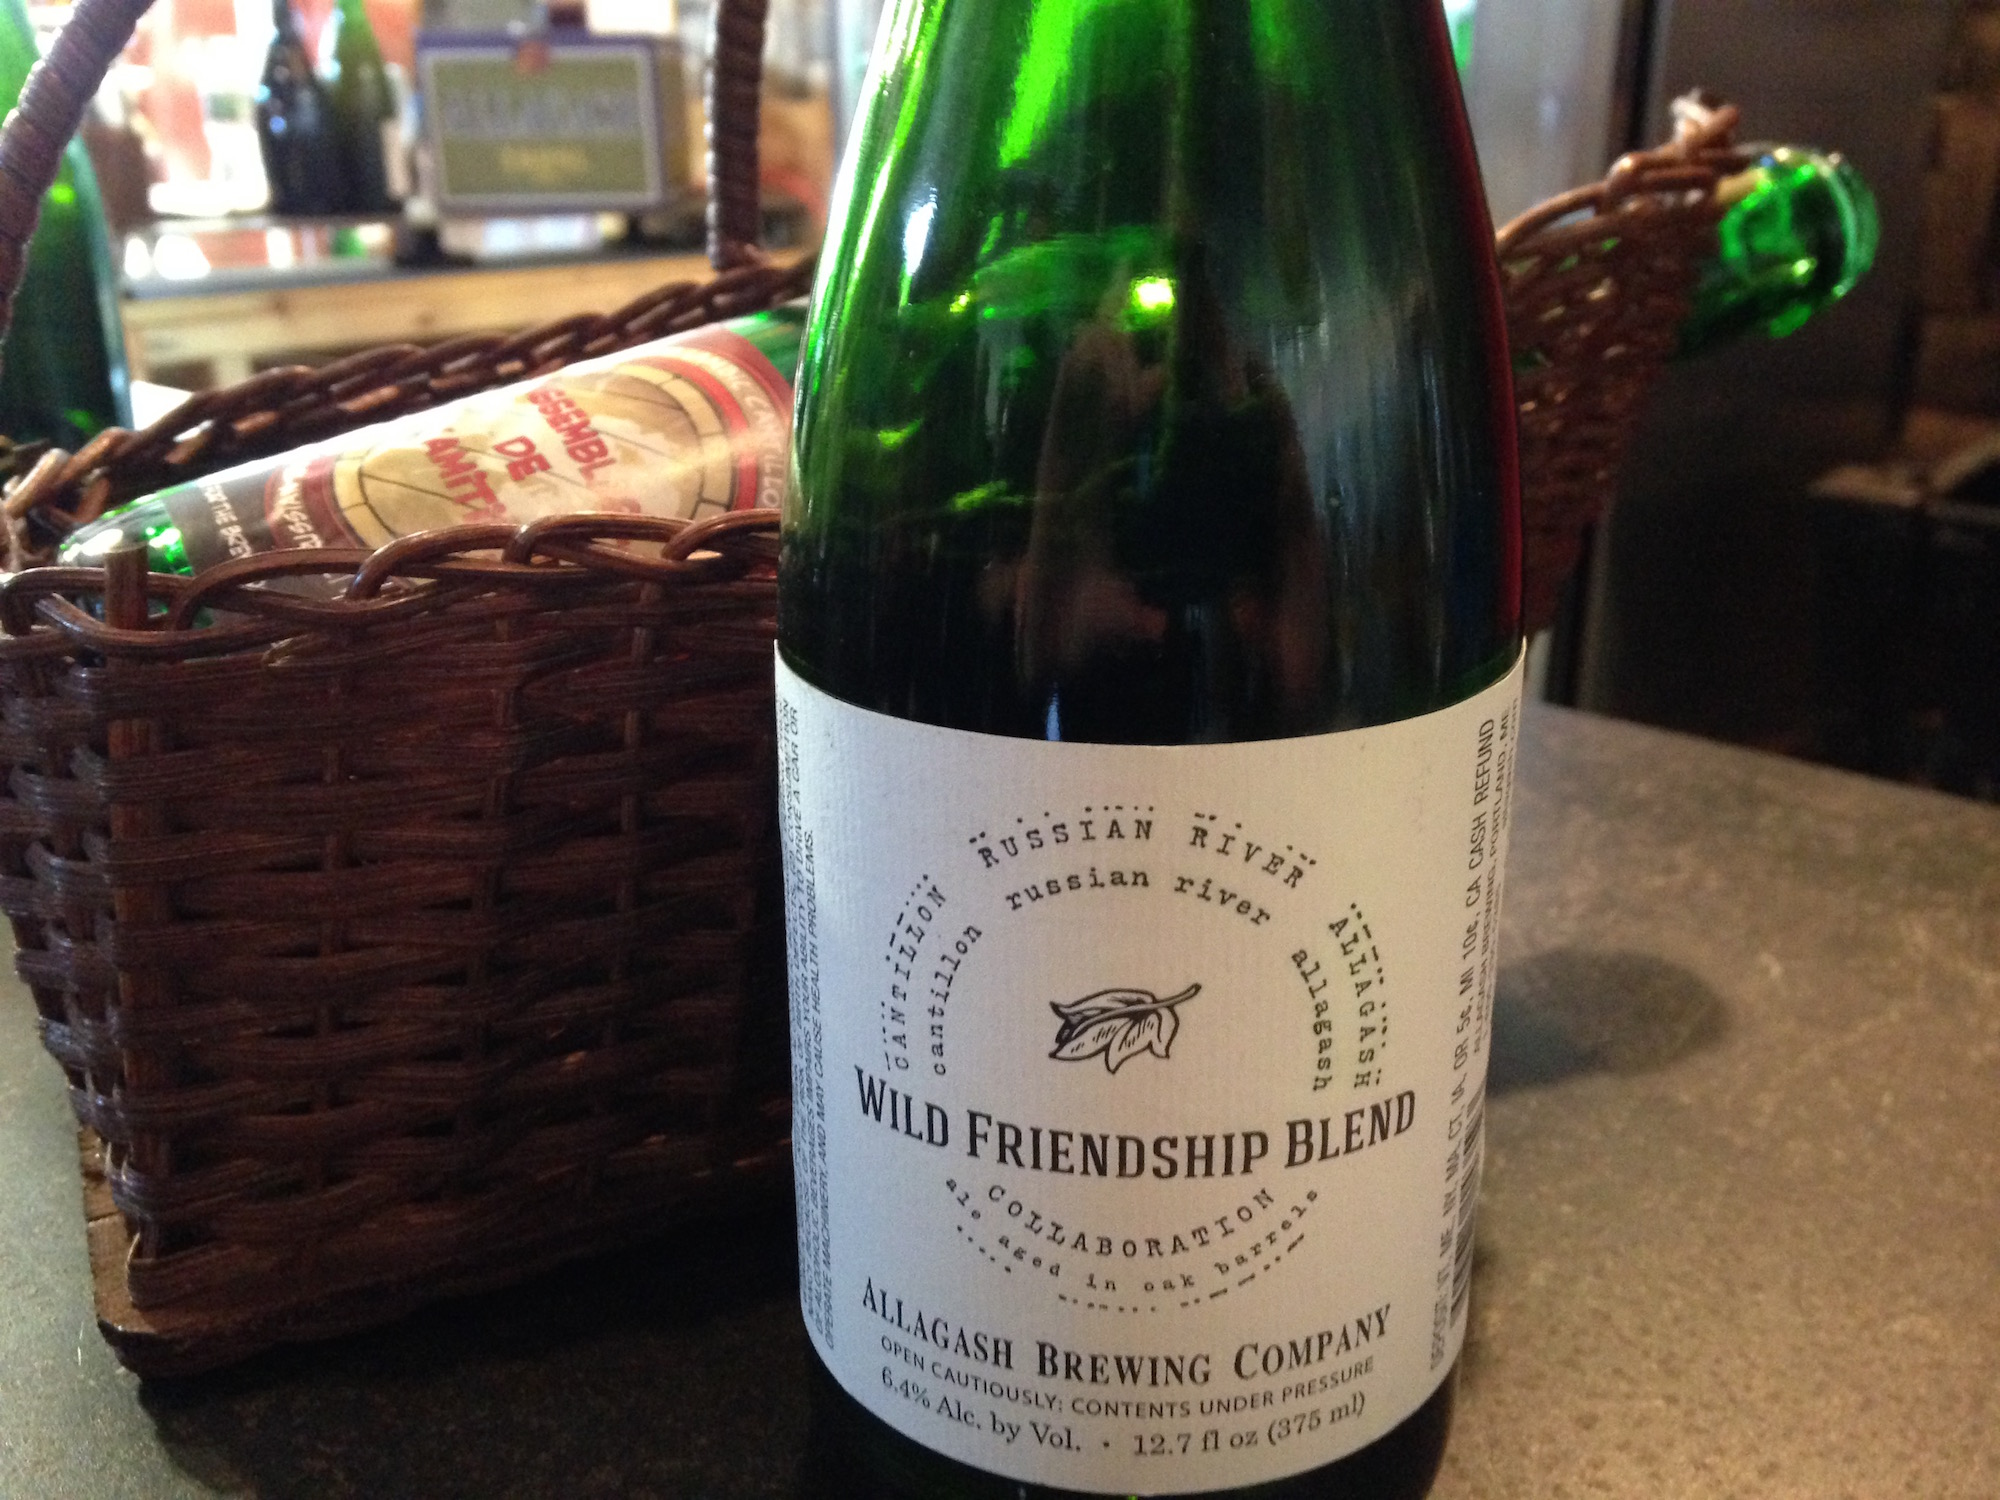 Allagash's version of the Wild Friendship Blend (foreground) and Cantillon's.